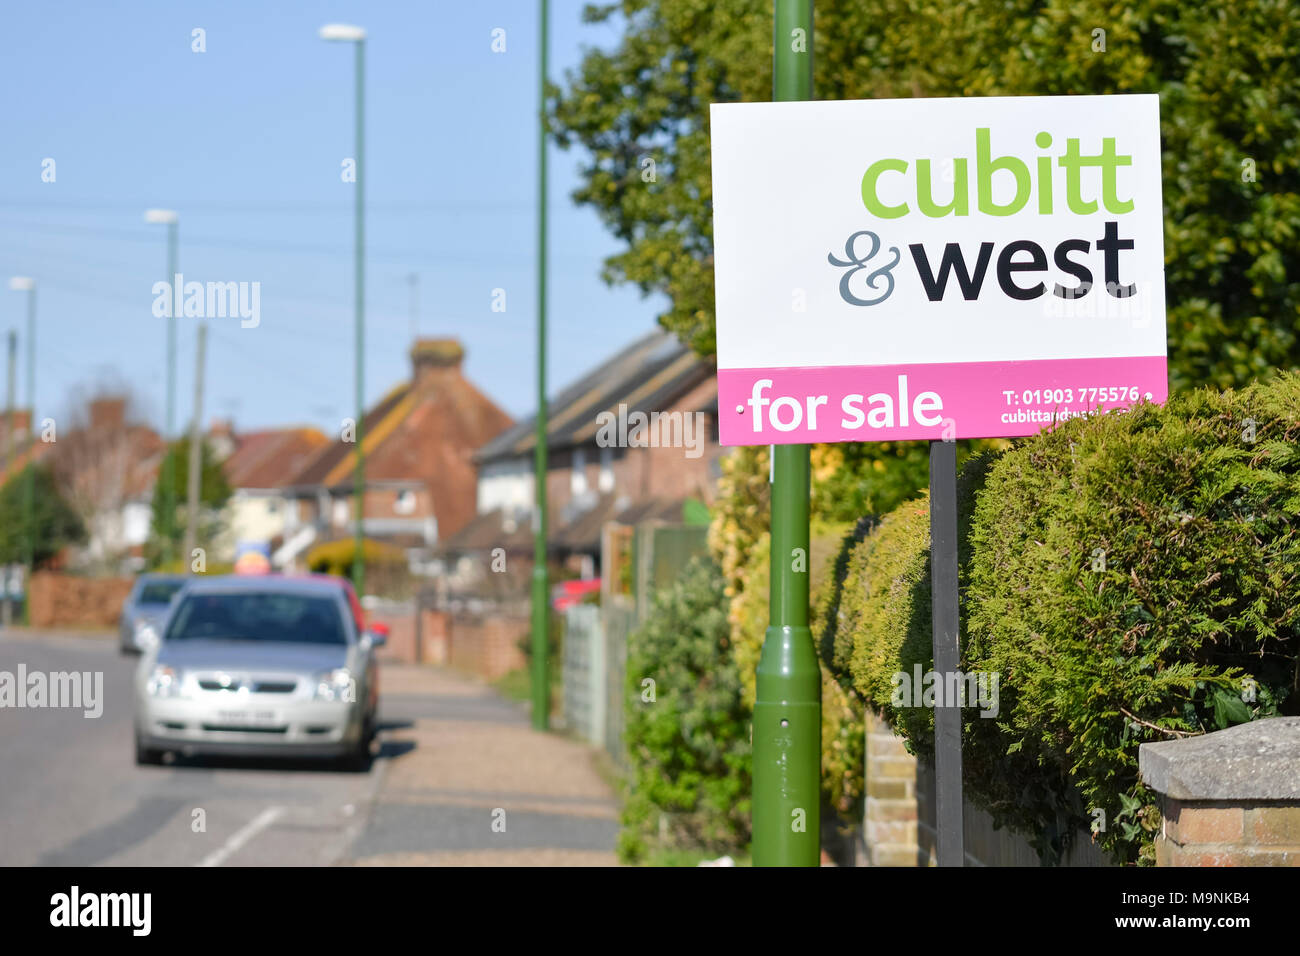 Cubitt & West estate agents 'For Sale' sign outside a house in the UK. - Stock Image